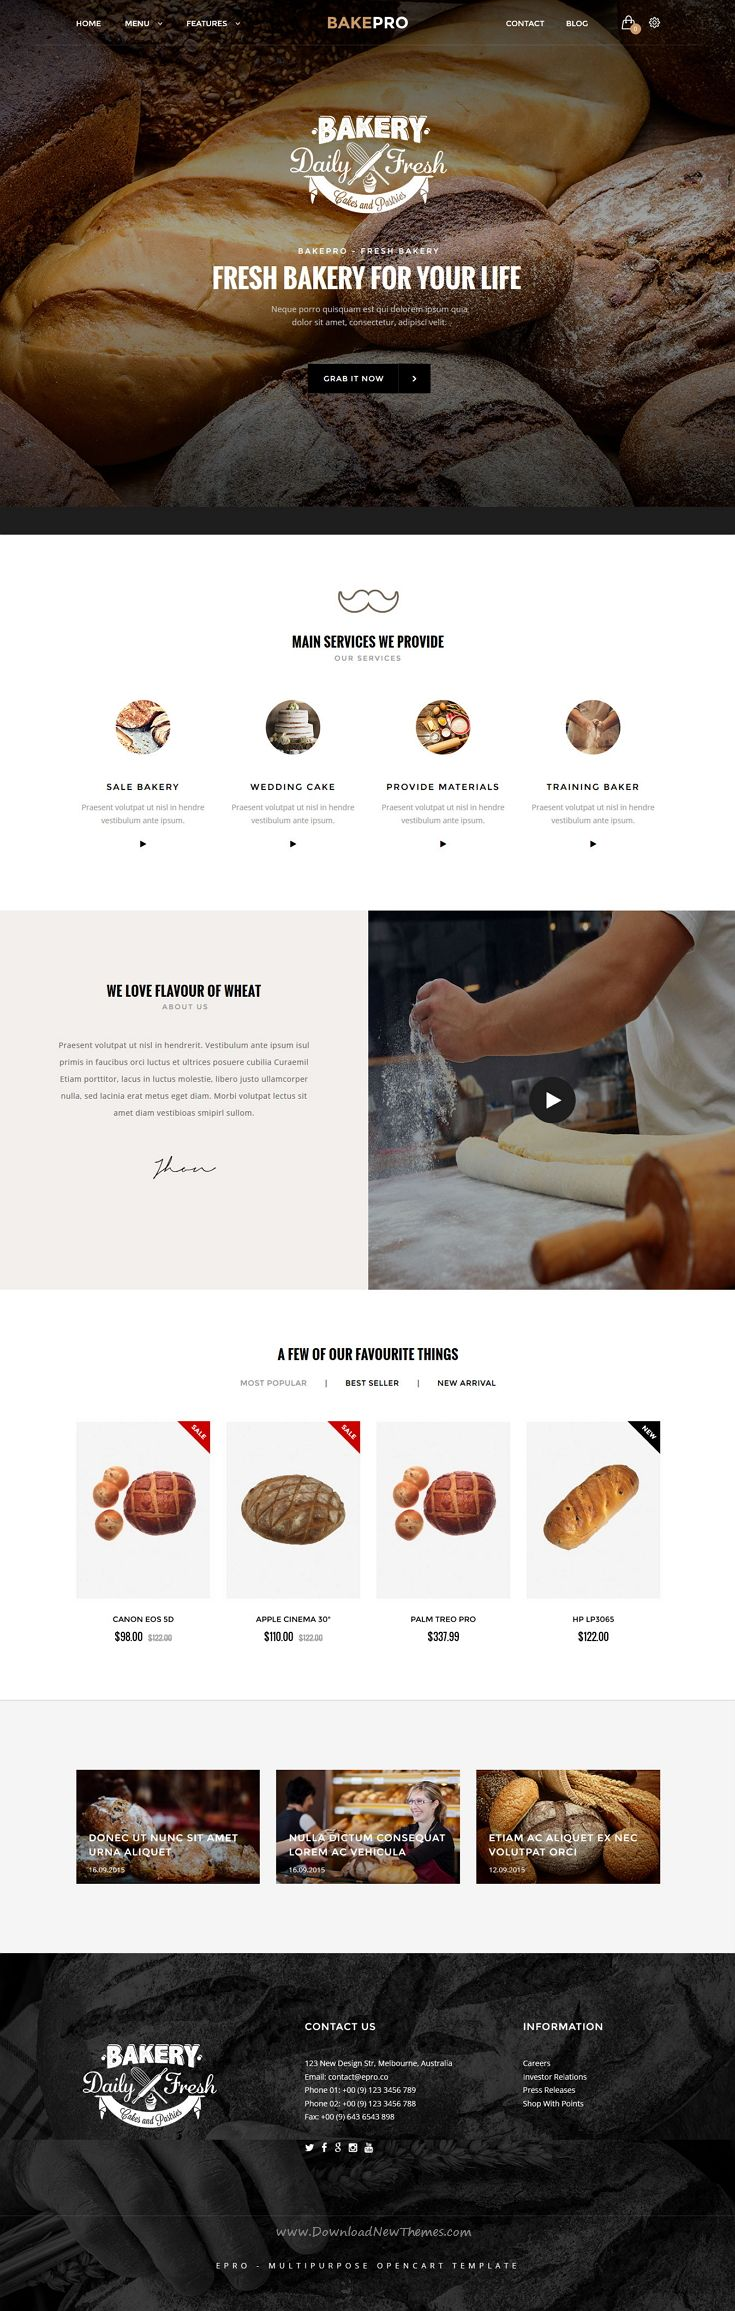 ePro is an advanced OpenCart theme fully customizable and suitable for multipurpose eCommerce #websites. #bakery #pastry #shop Download Now!